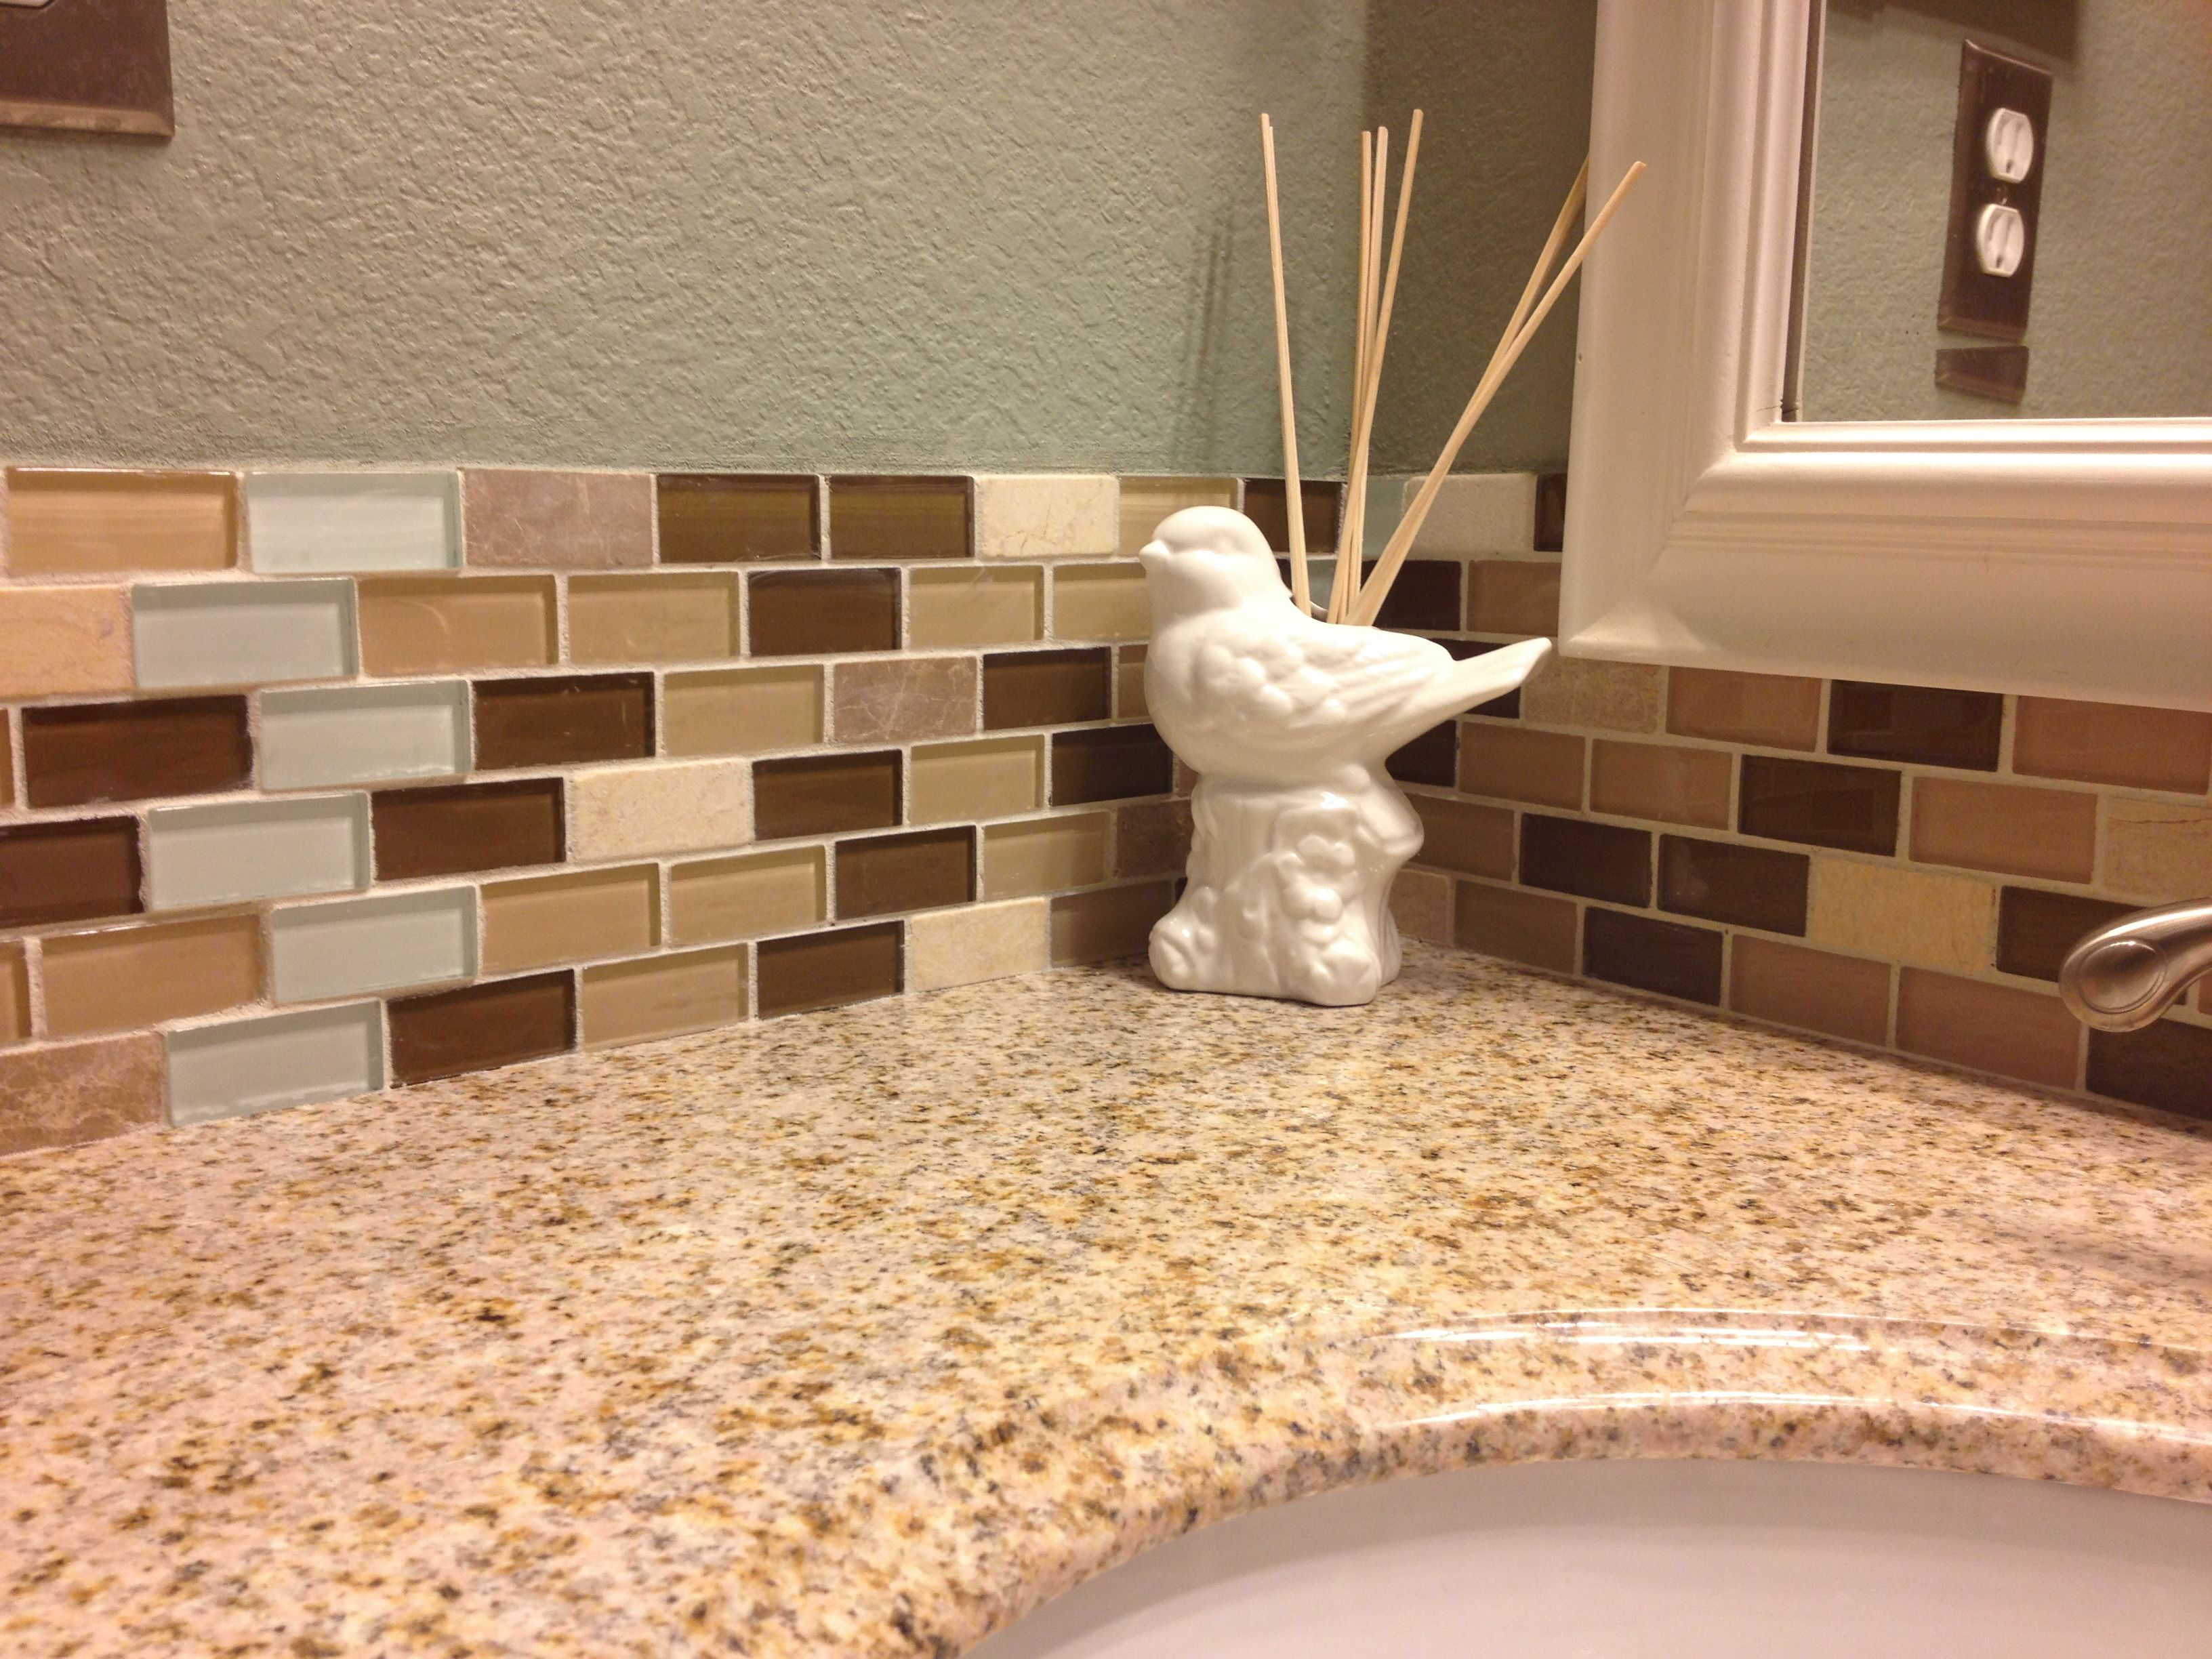 Bathroom Tile Backsplash Slightly Wraps The Mirror